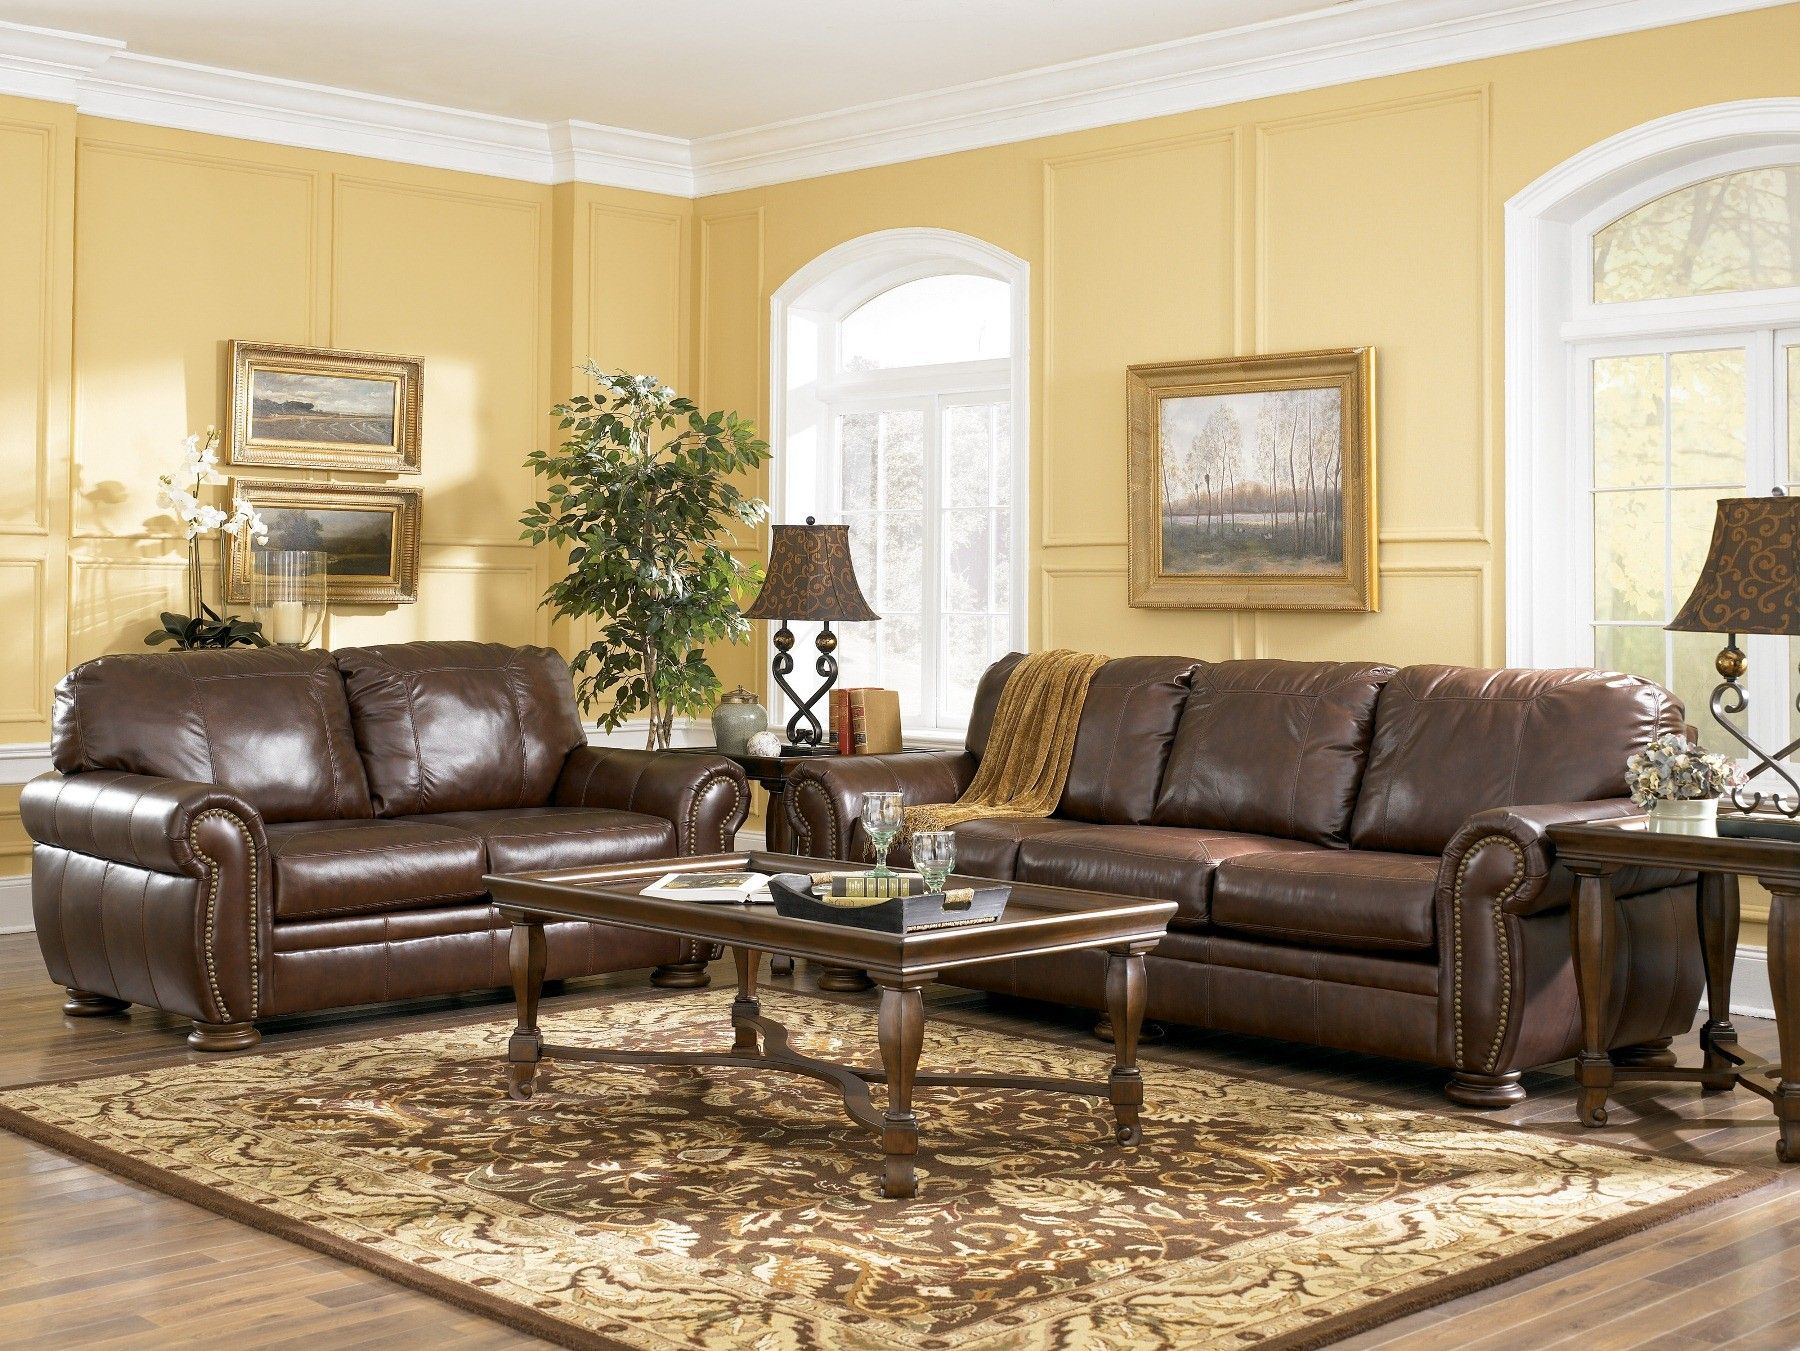 Living Room Sets Brown Living Room Decor Living Room Colors Couch Decor